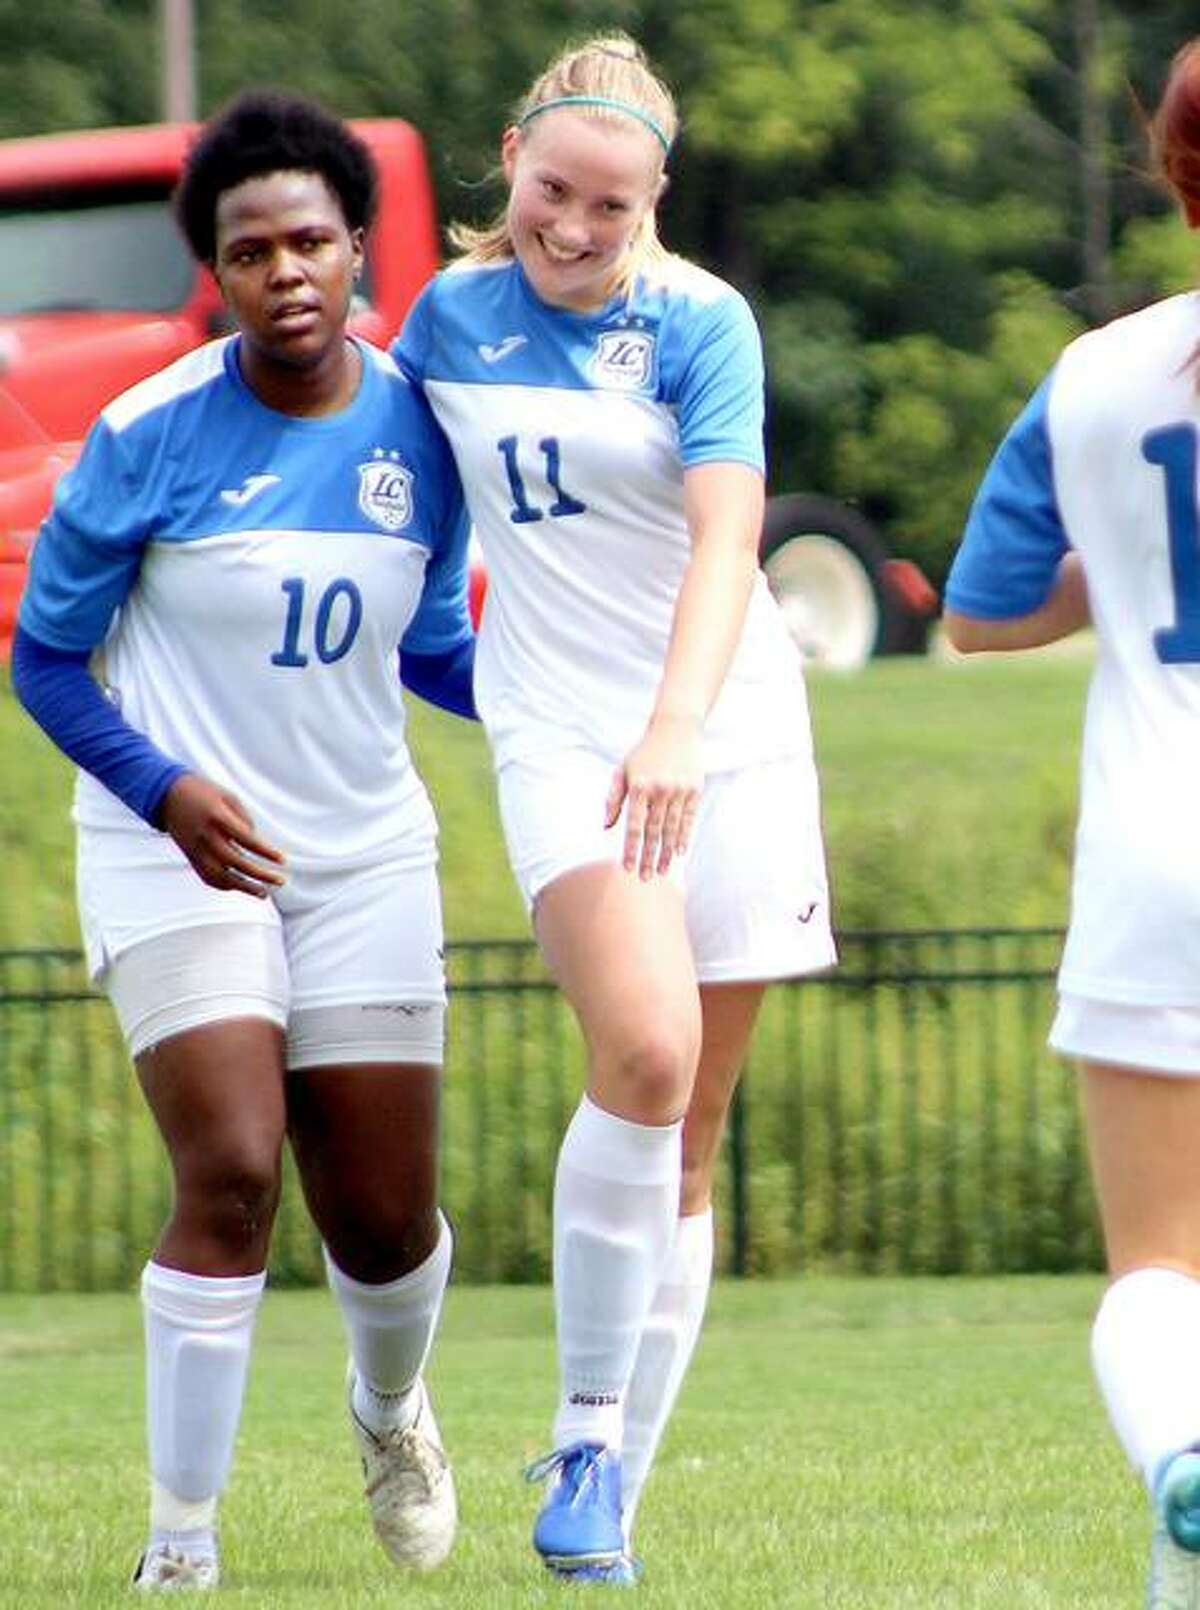 LCCC's Candice Parziani, right, is all smiles after scoring from an assist by teammate Boitumelo Rabale during the 2019 season. Parziani, who scored 31 goals as a freshman, returns for the spring season for LC. Rabale, who was national Player of the Year with 57 goals in 2019, has graduated. LCCC starts its season April 3 at home against Triton College.